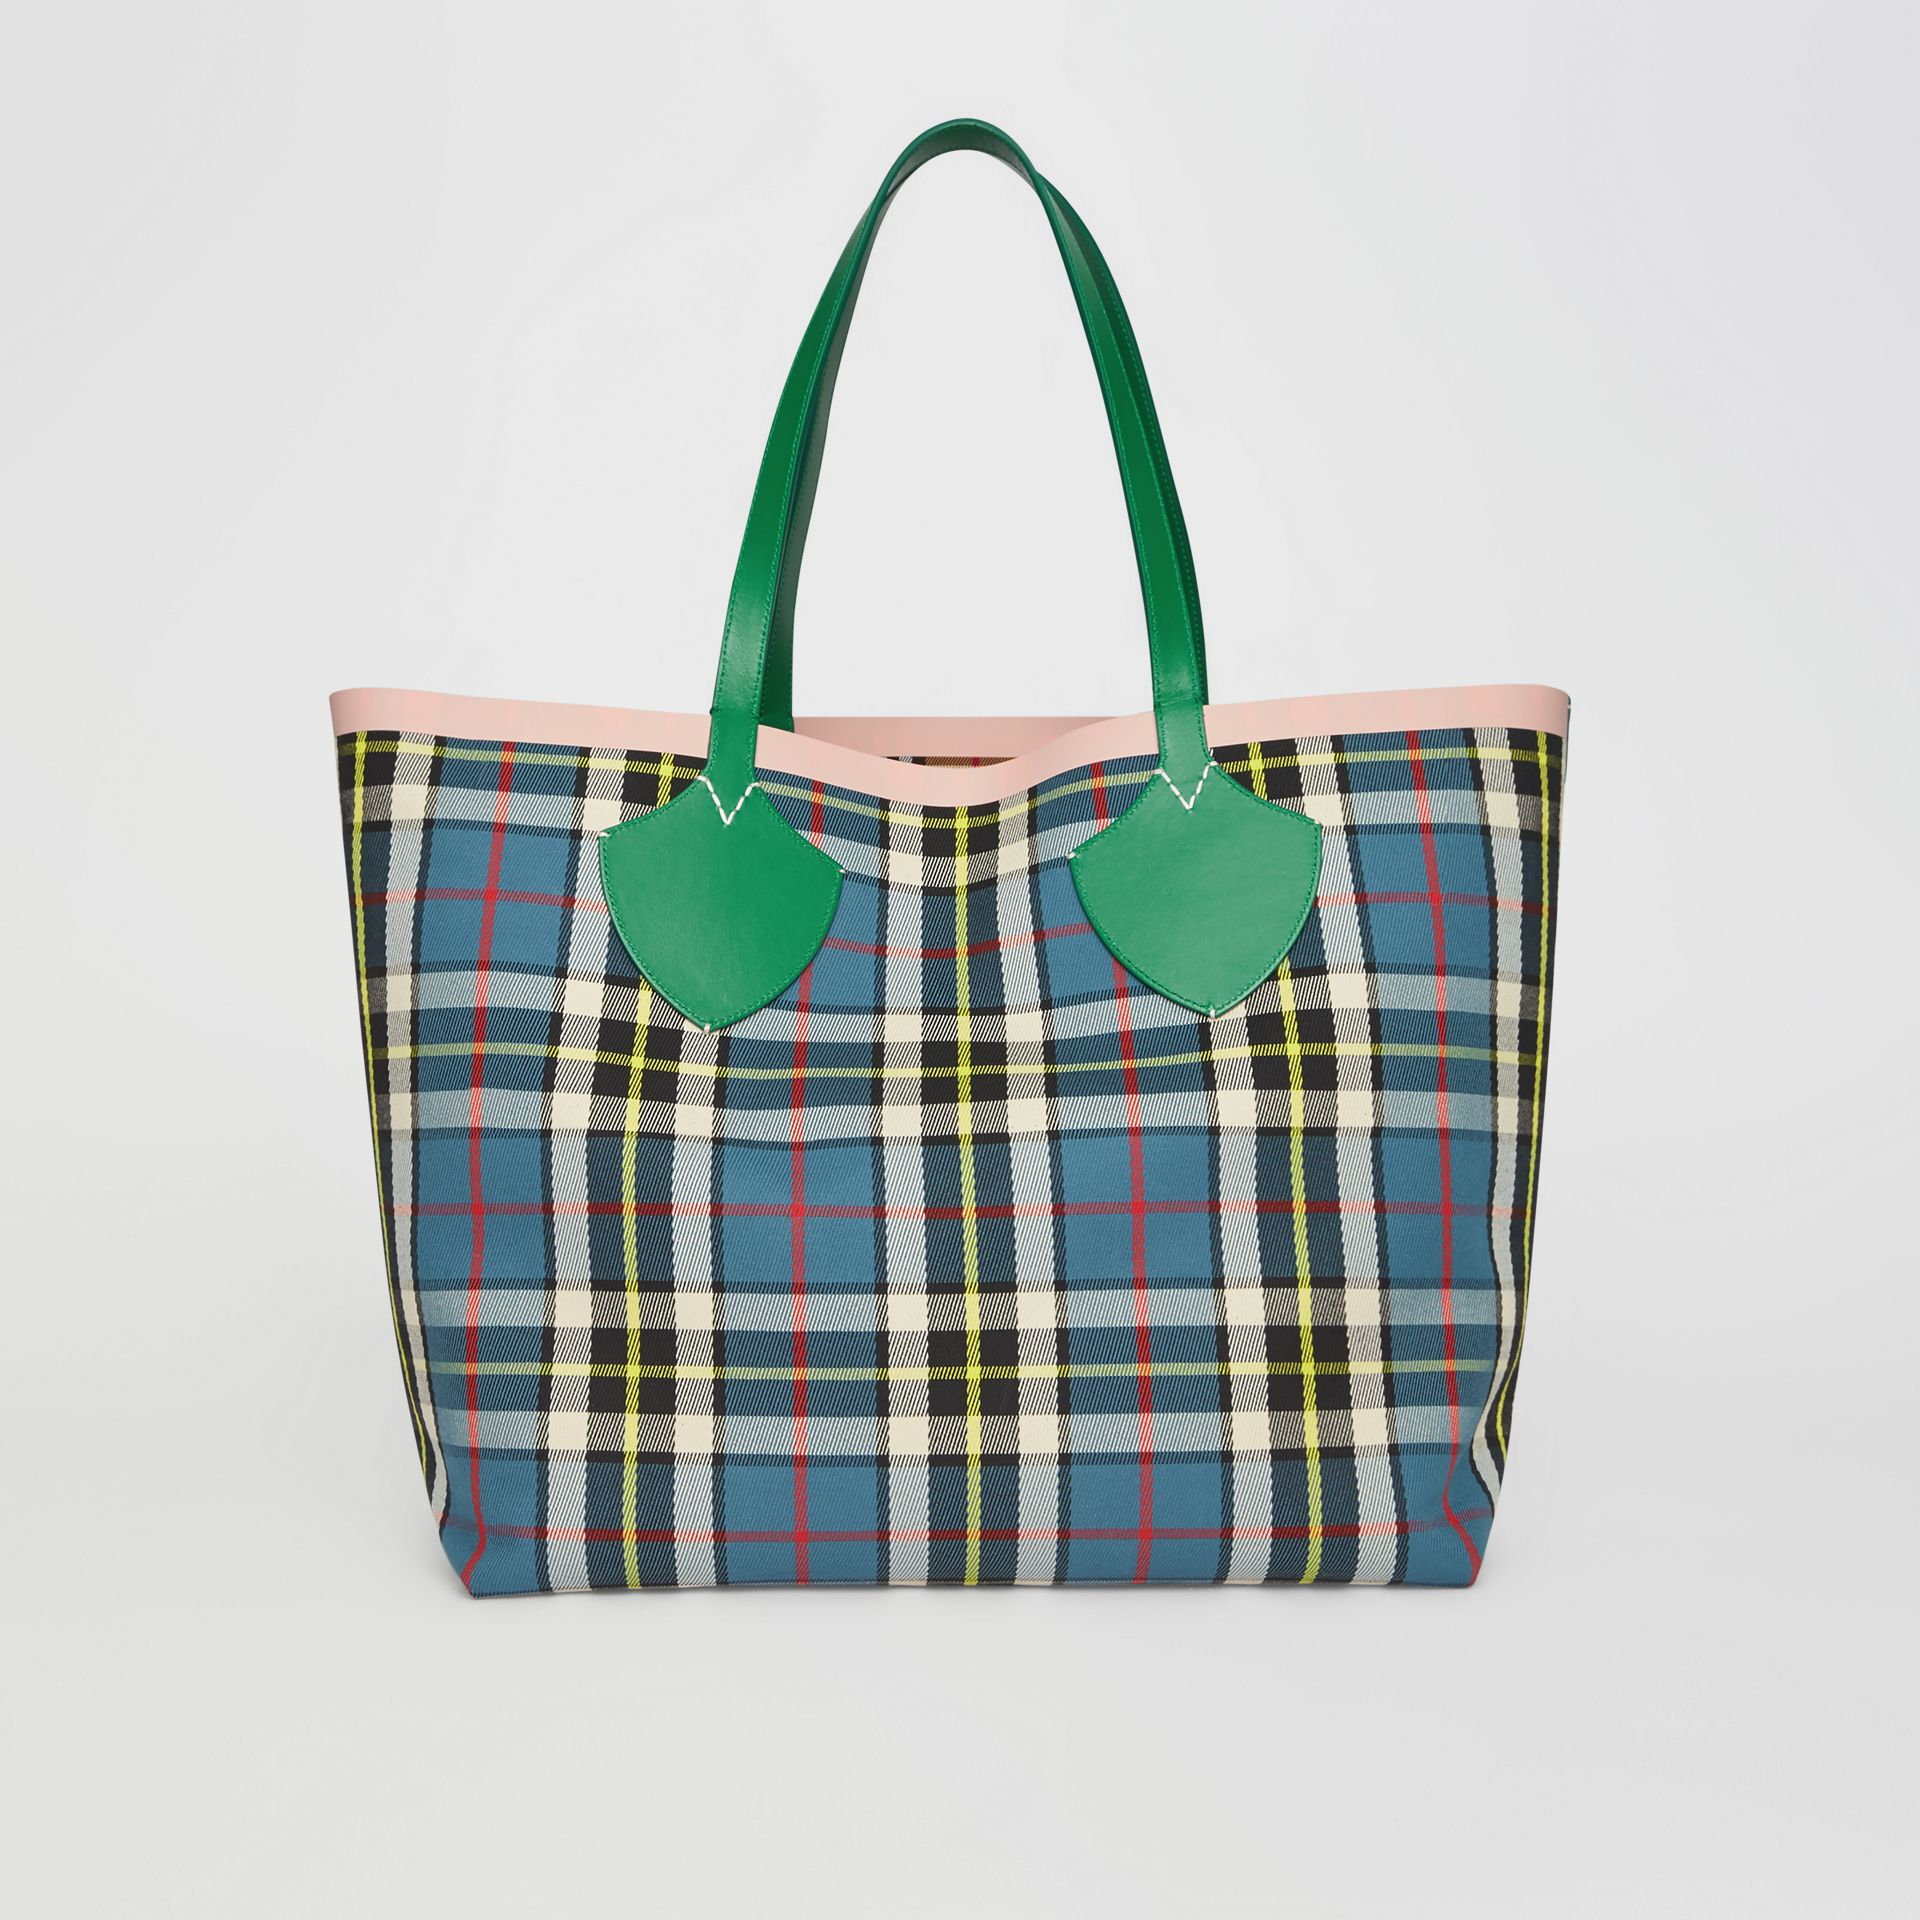 The Giant Reversible Tote in Vintage Check in Palm Green/pink Apricot - Women | Burberry - gallery image 5